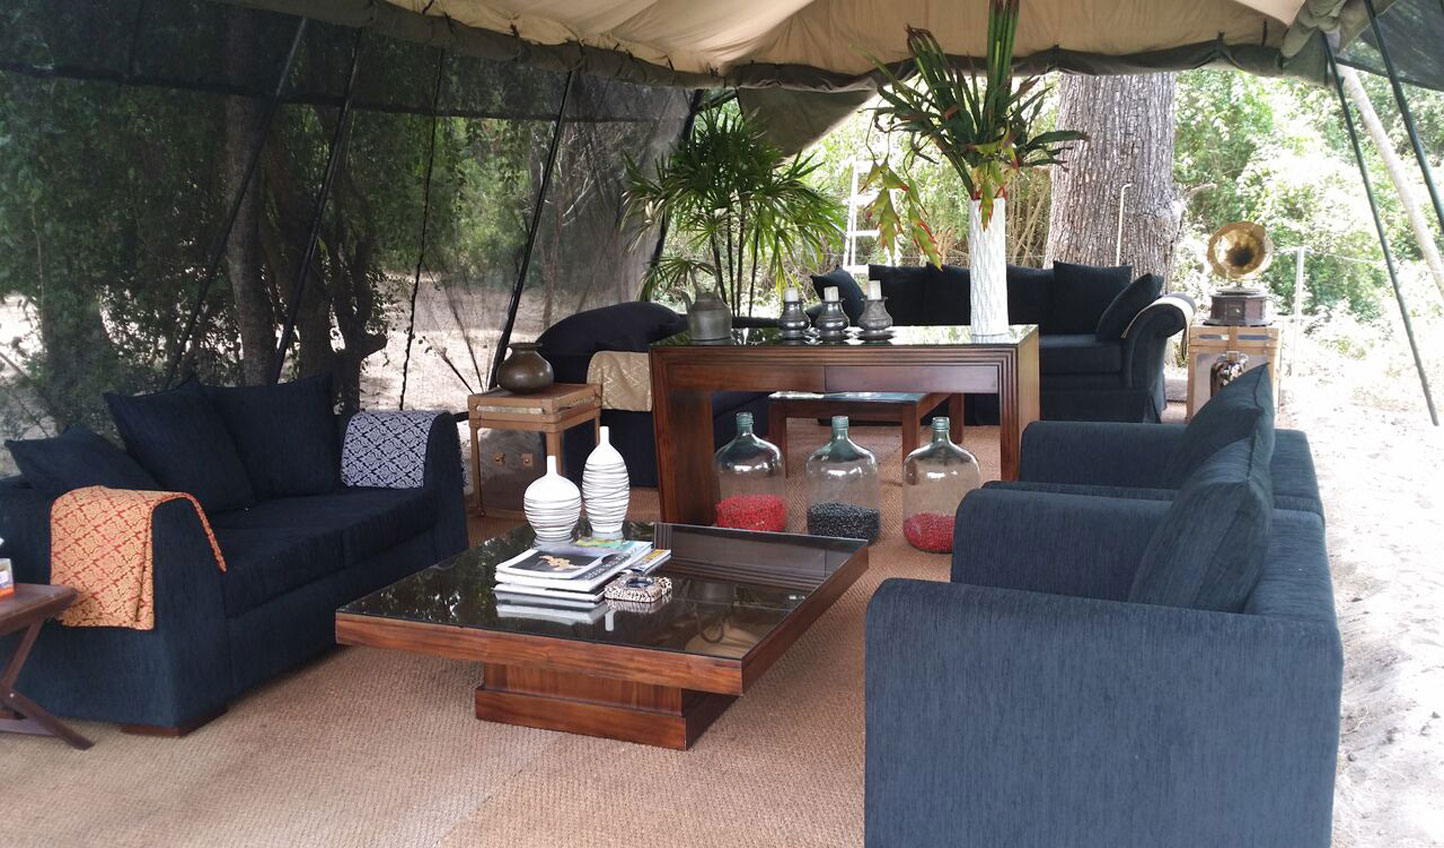 A slice of luxury in the National Park